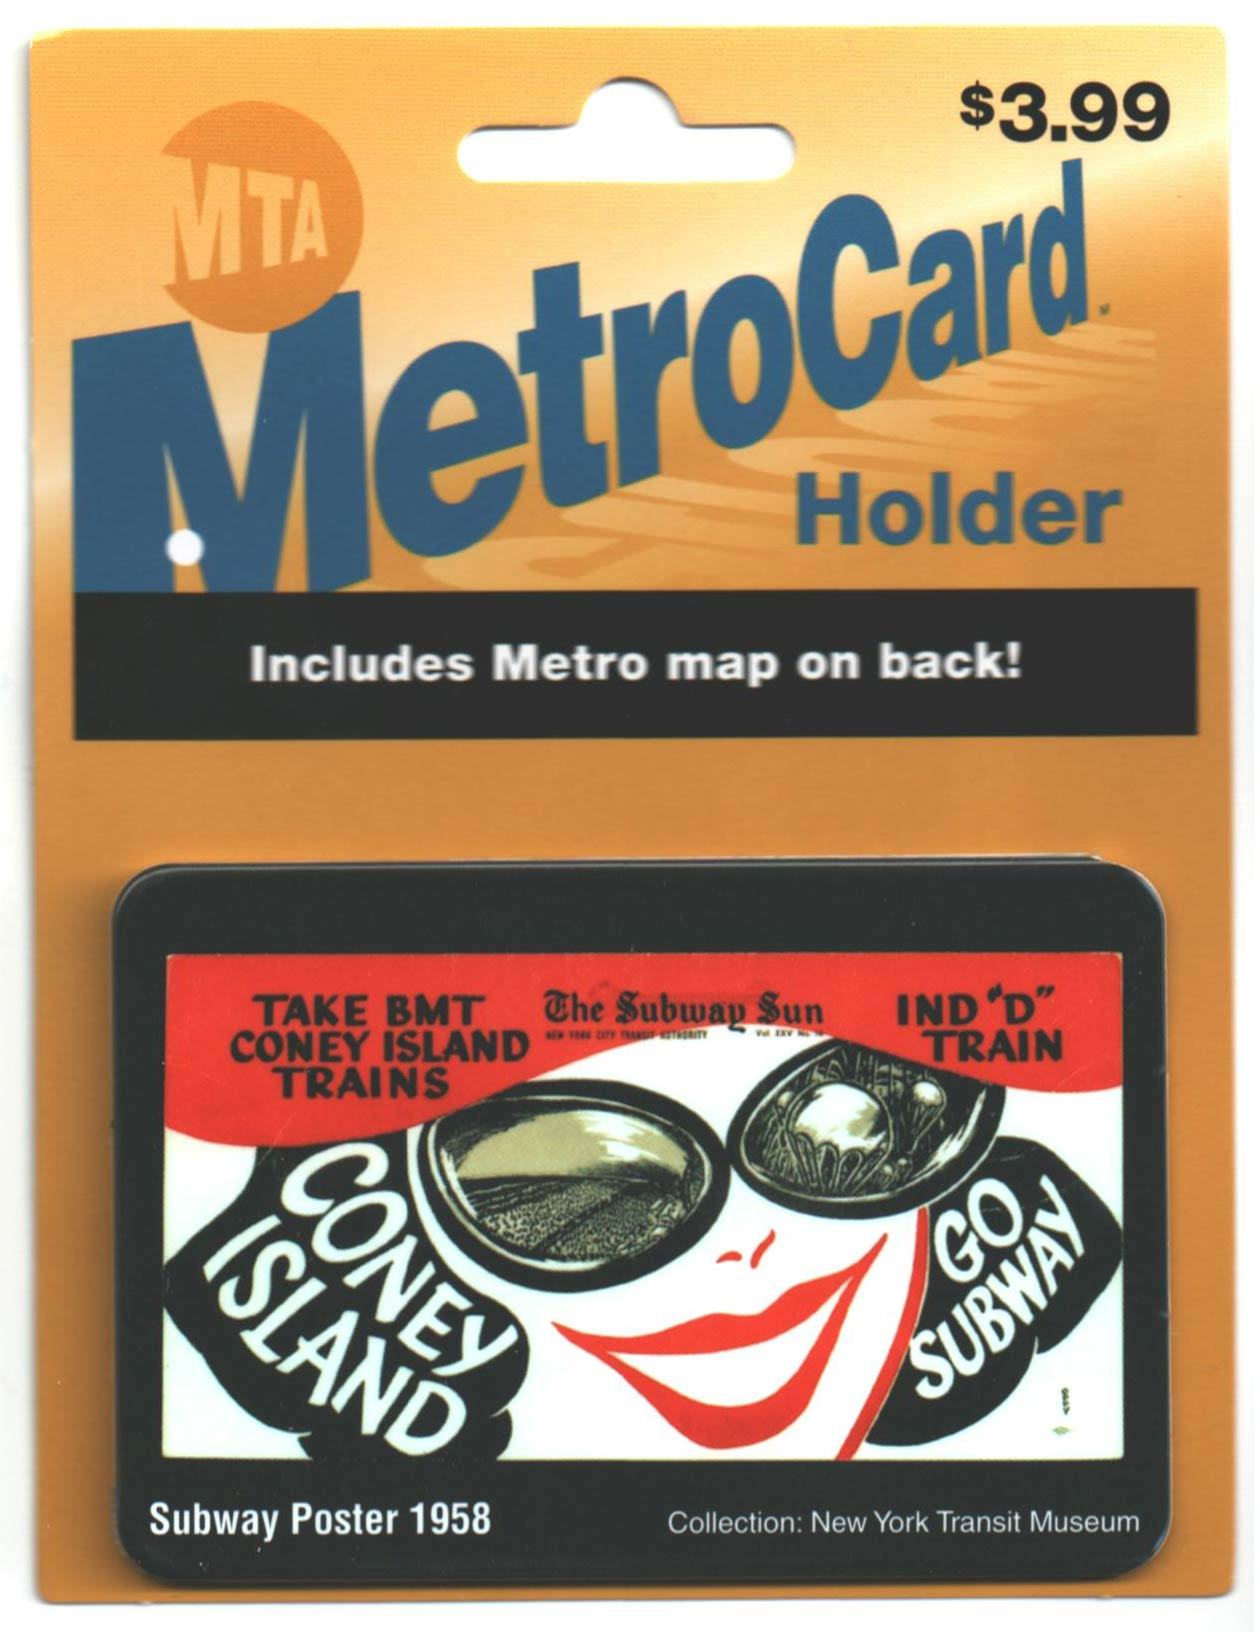 MetroCard Holder Coney Island